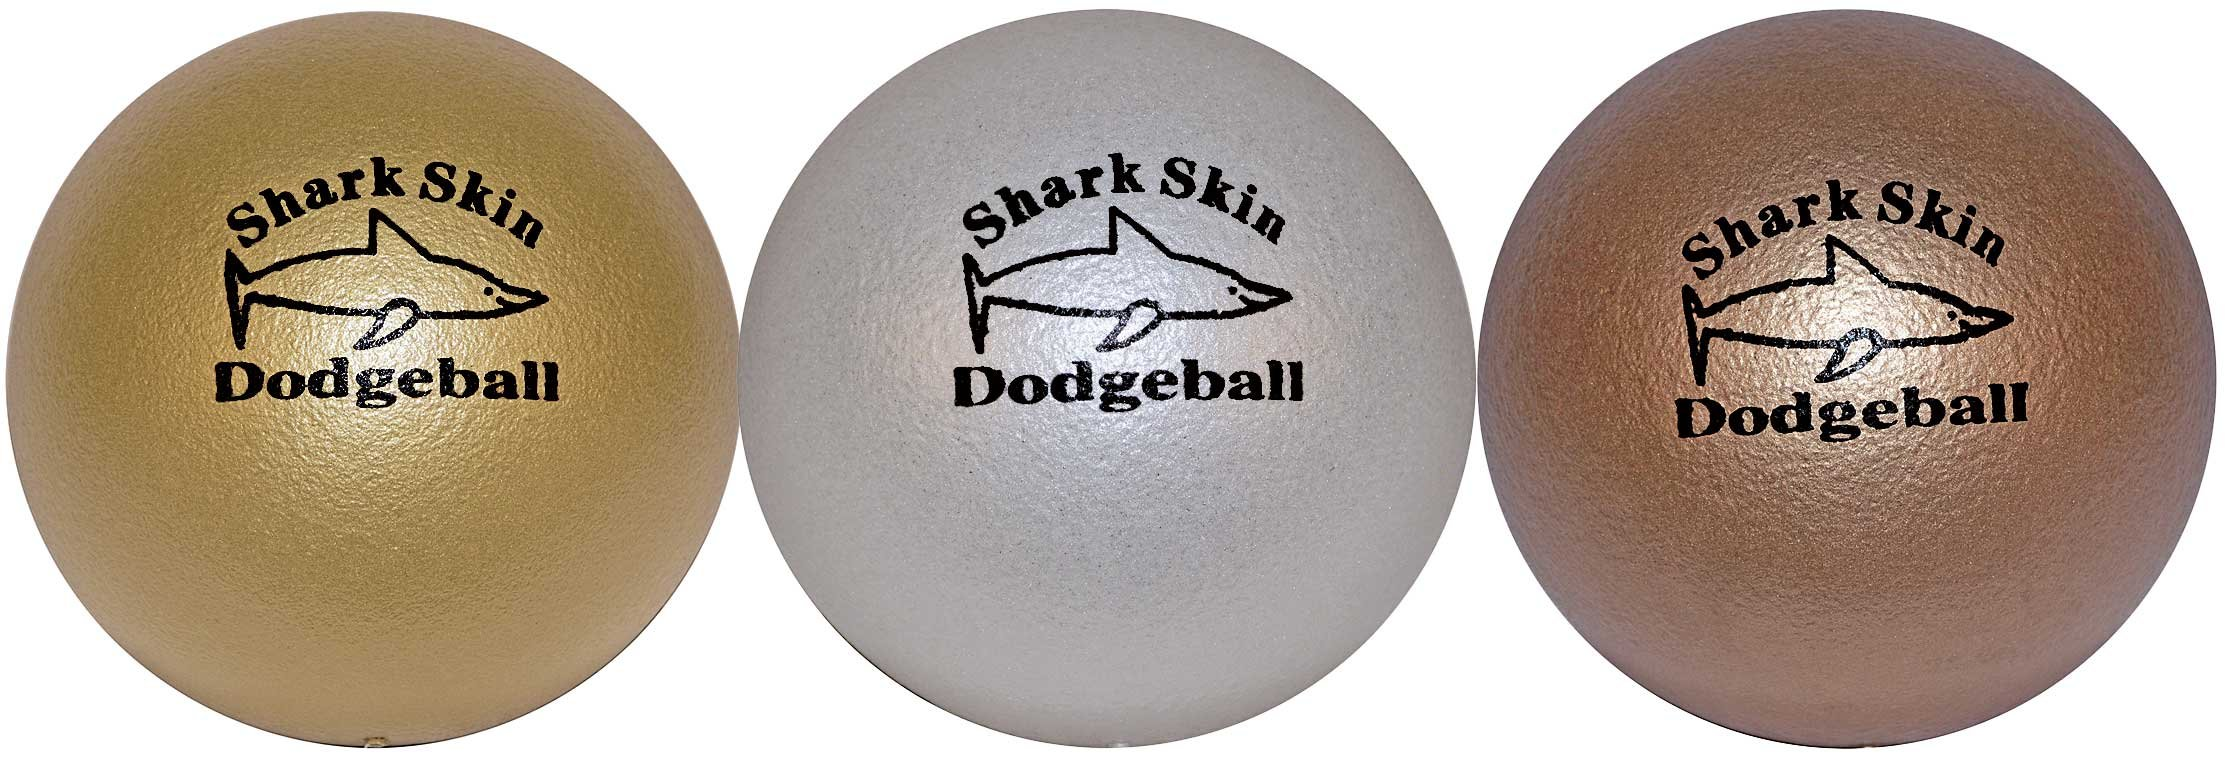 Metallic Shark Skin Dodgeball Set of 3 by Great Lakes Sports